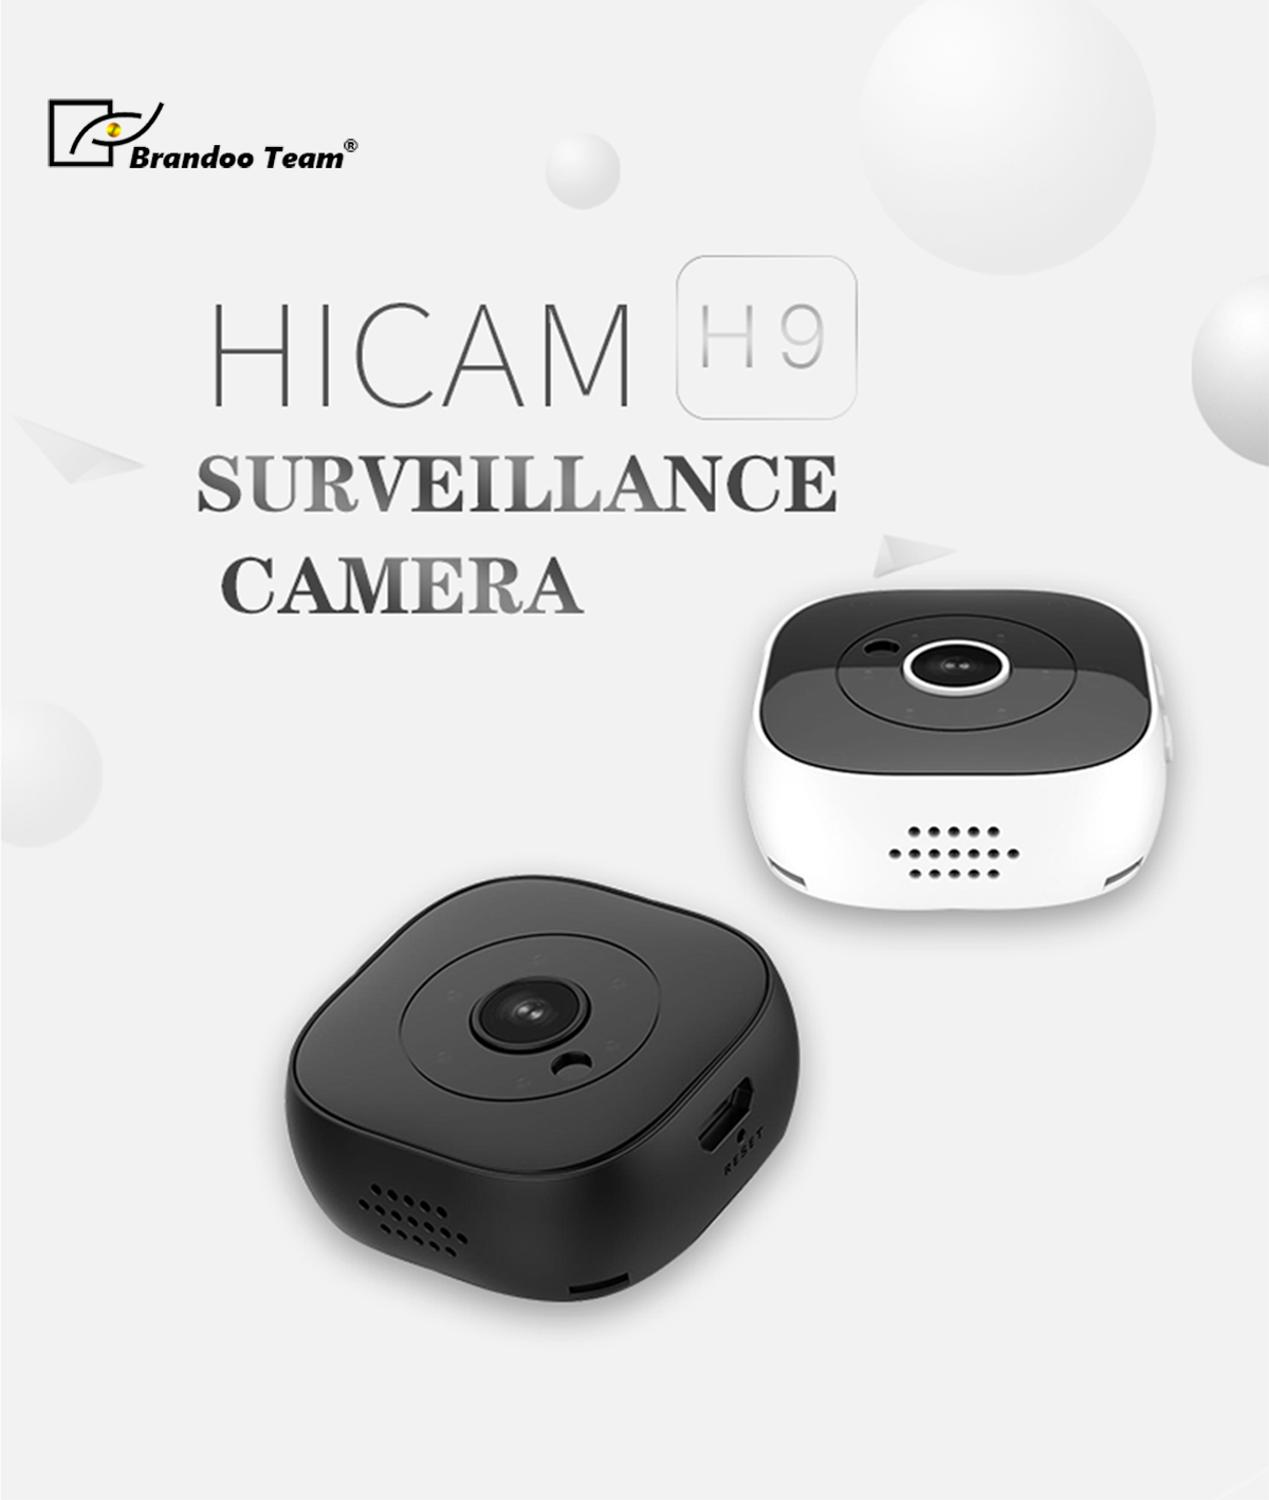 BRANDOO Mini 120 degree Wide Angle Motion Detection Camera  Wifi IP Night Vision 1080P Camcorder Outdoor DVR DVBRANDOO Mini 120 degree Wide Angle Motion Detection Camera  Wifi IP Night Vision 1080P Camcorder Outdoor DVR DV